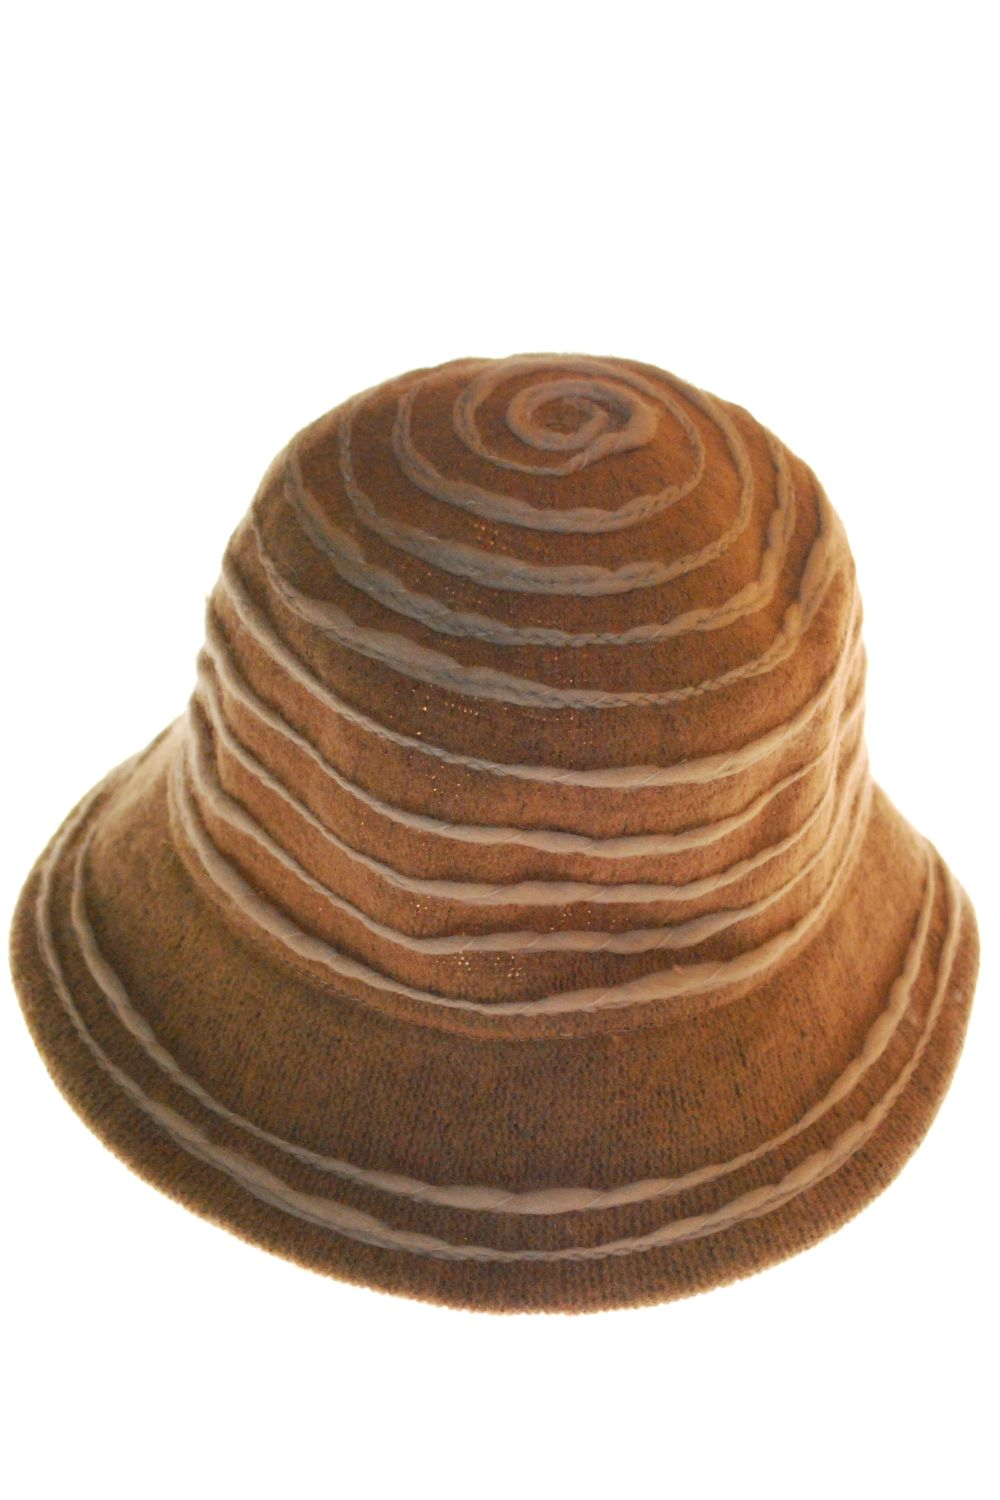 Hat Wool With Lines αξεσουαρ   καπέλα